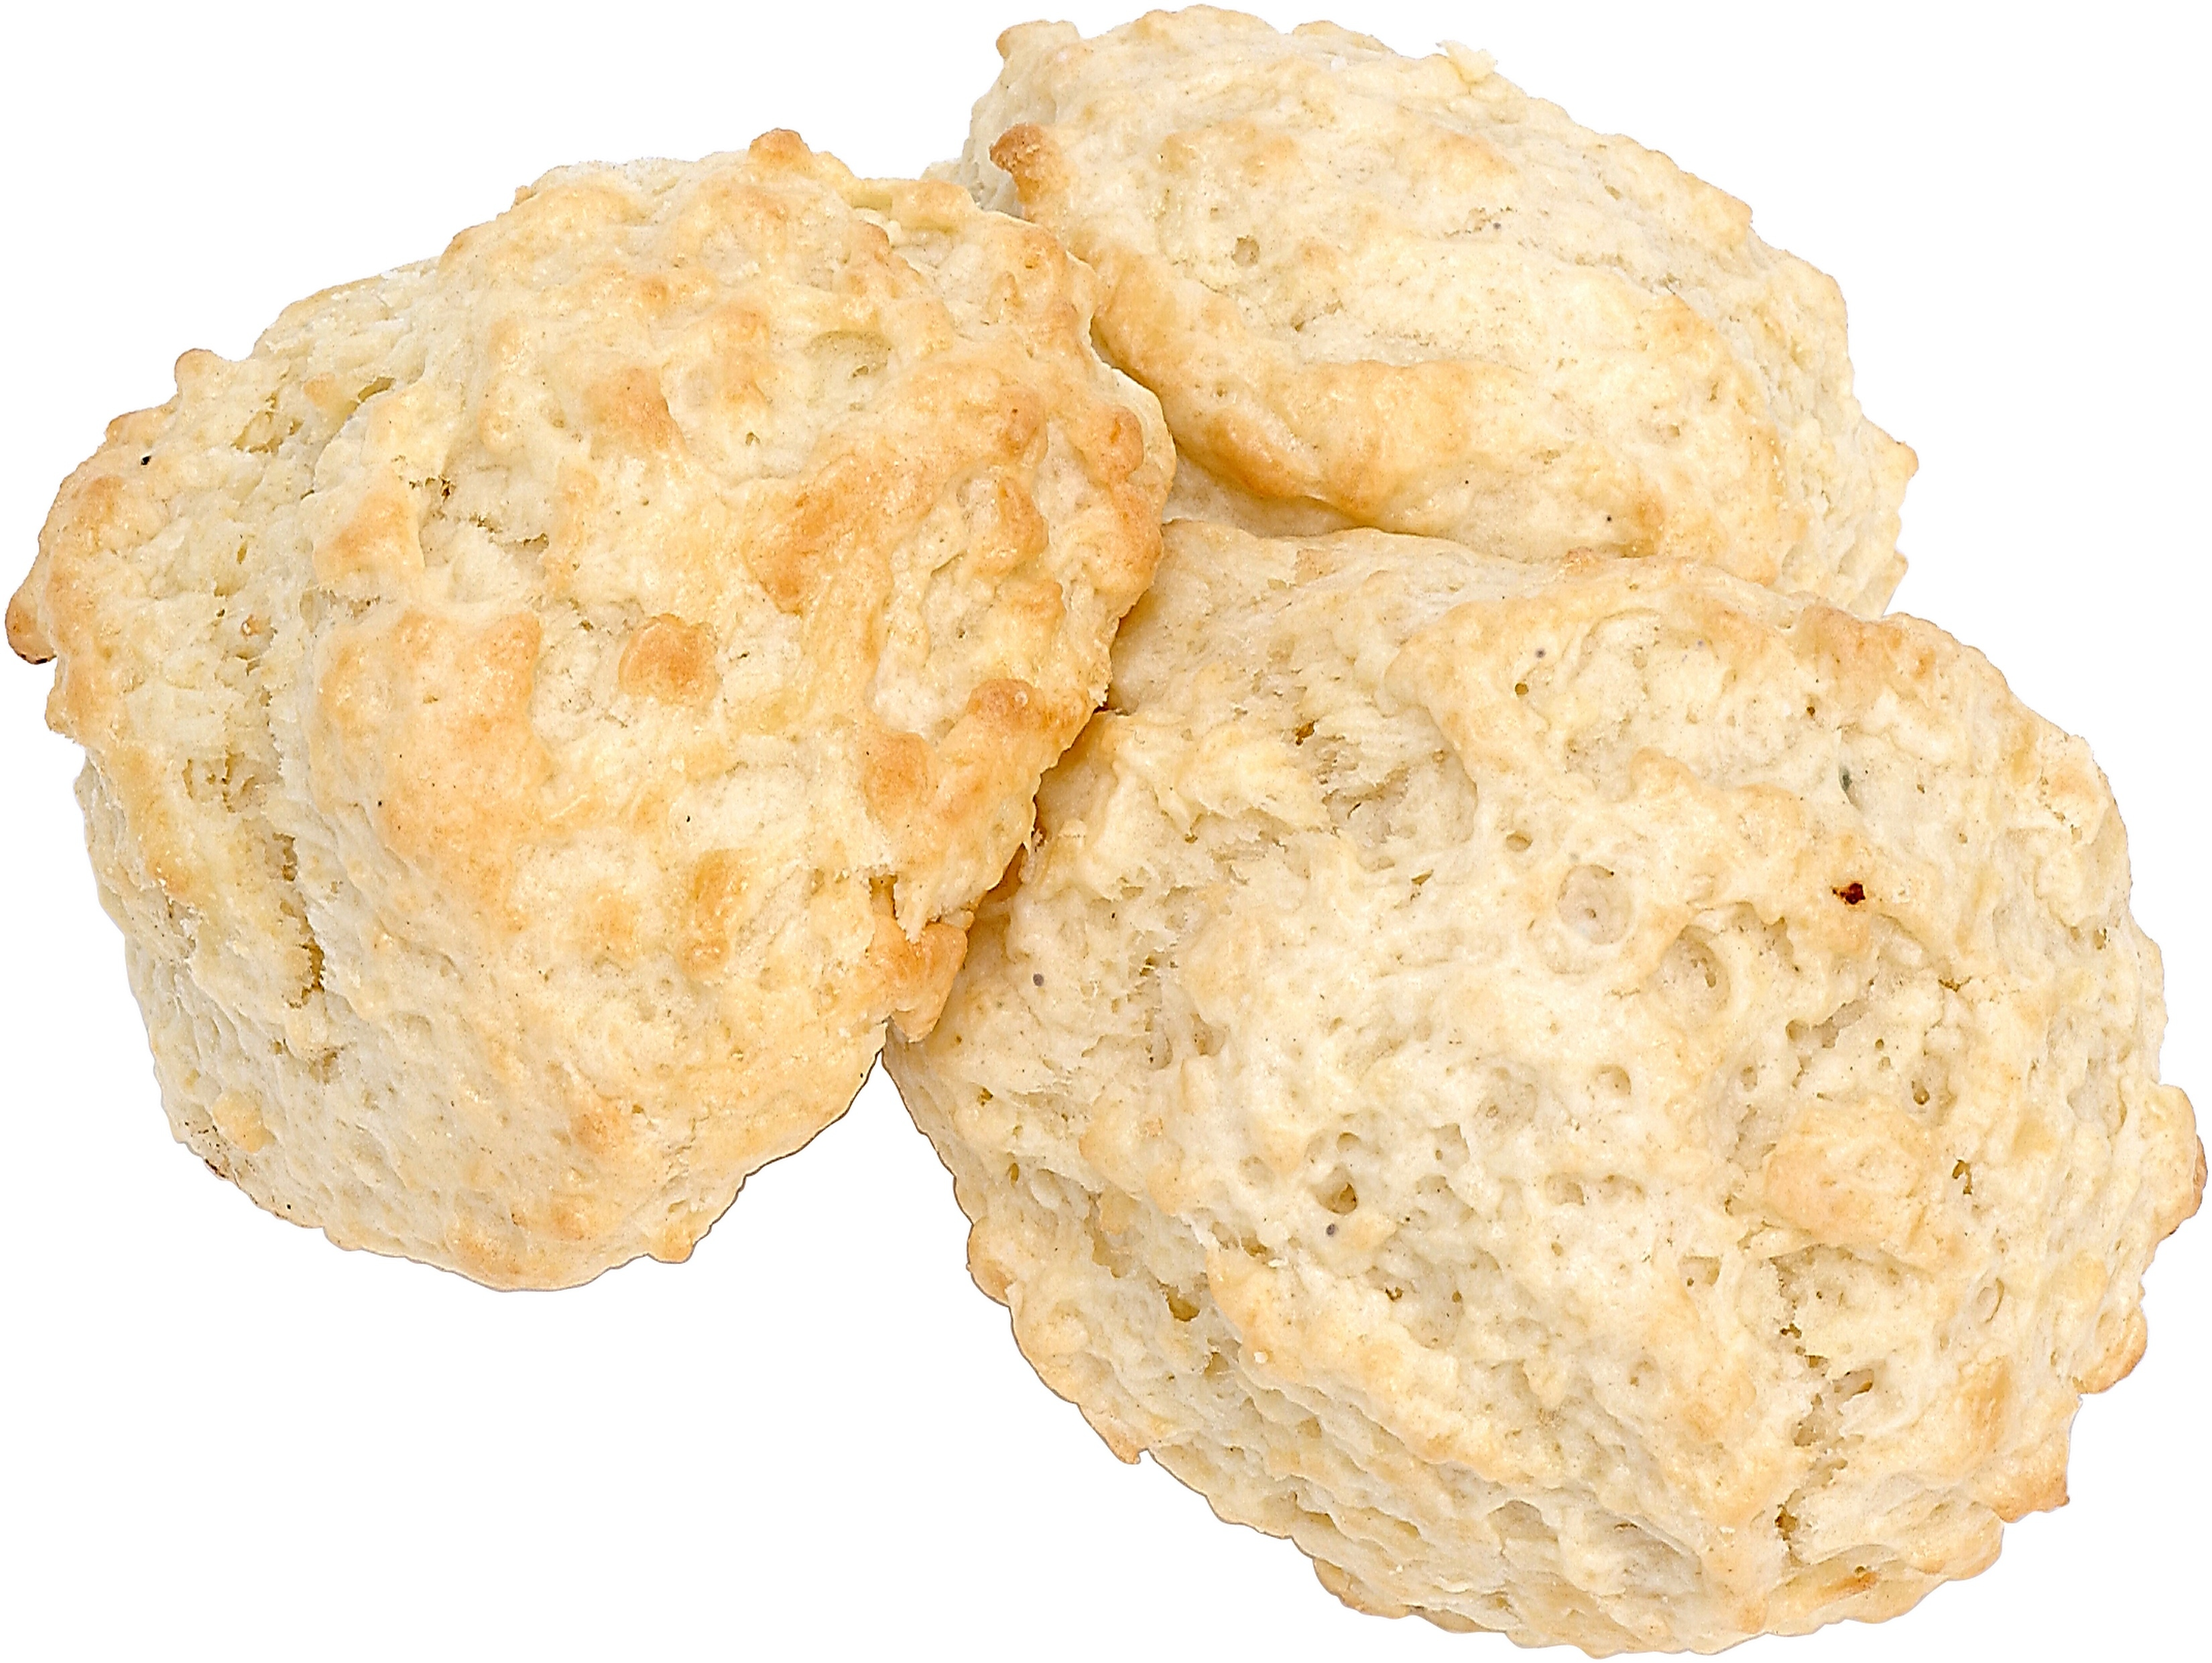 Sweet potato biscuits can be served with a roast or eaten for breakfast.